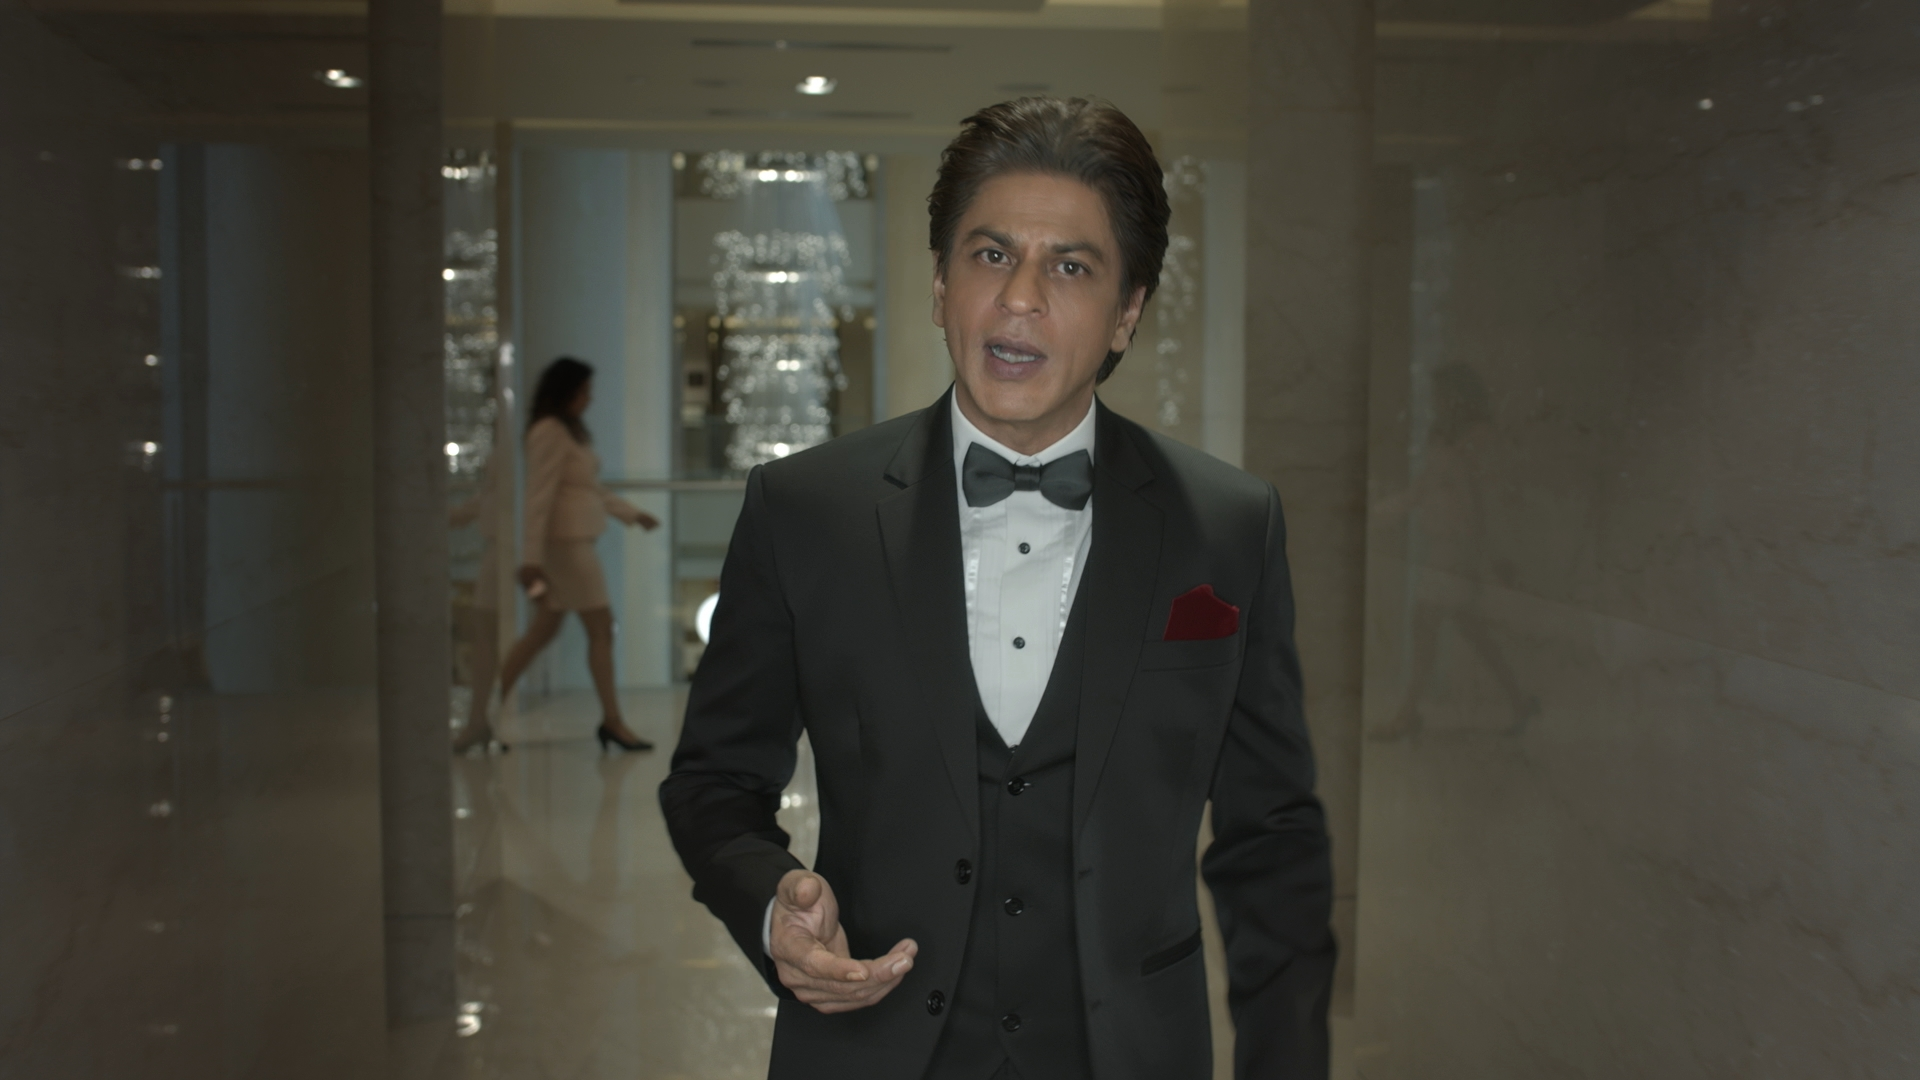 Star Plus, TED & Shah Rukh Khan invite audiences to get Inspired